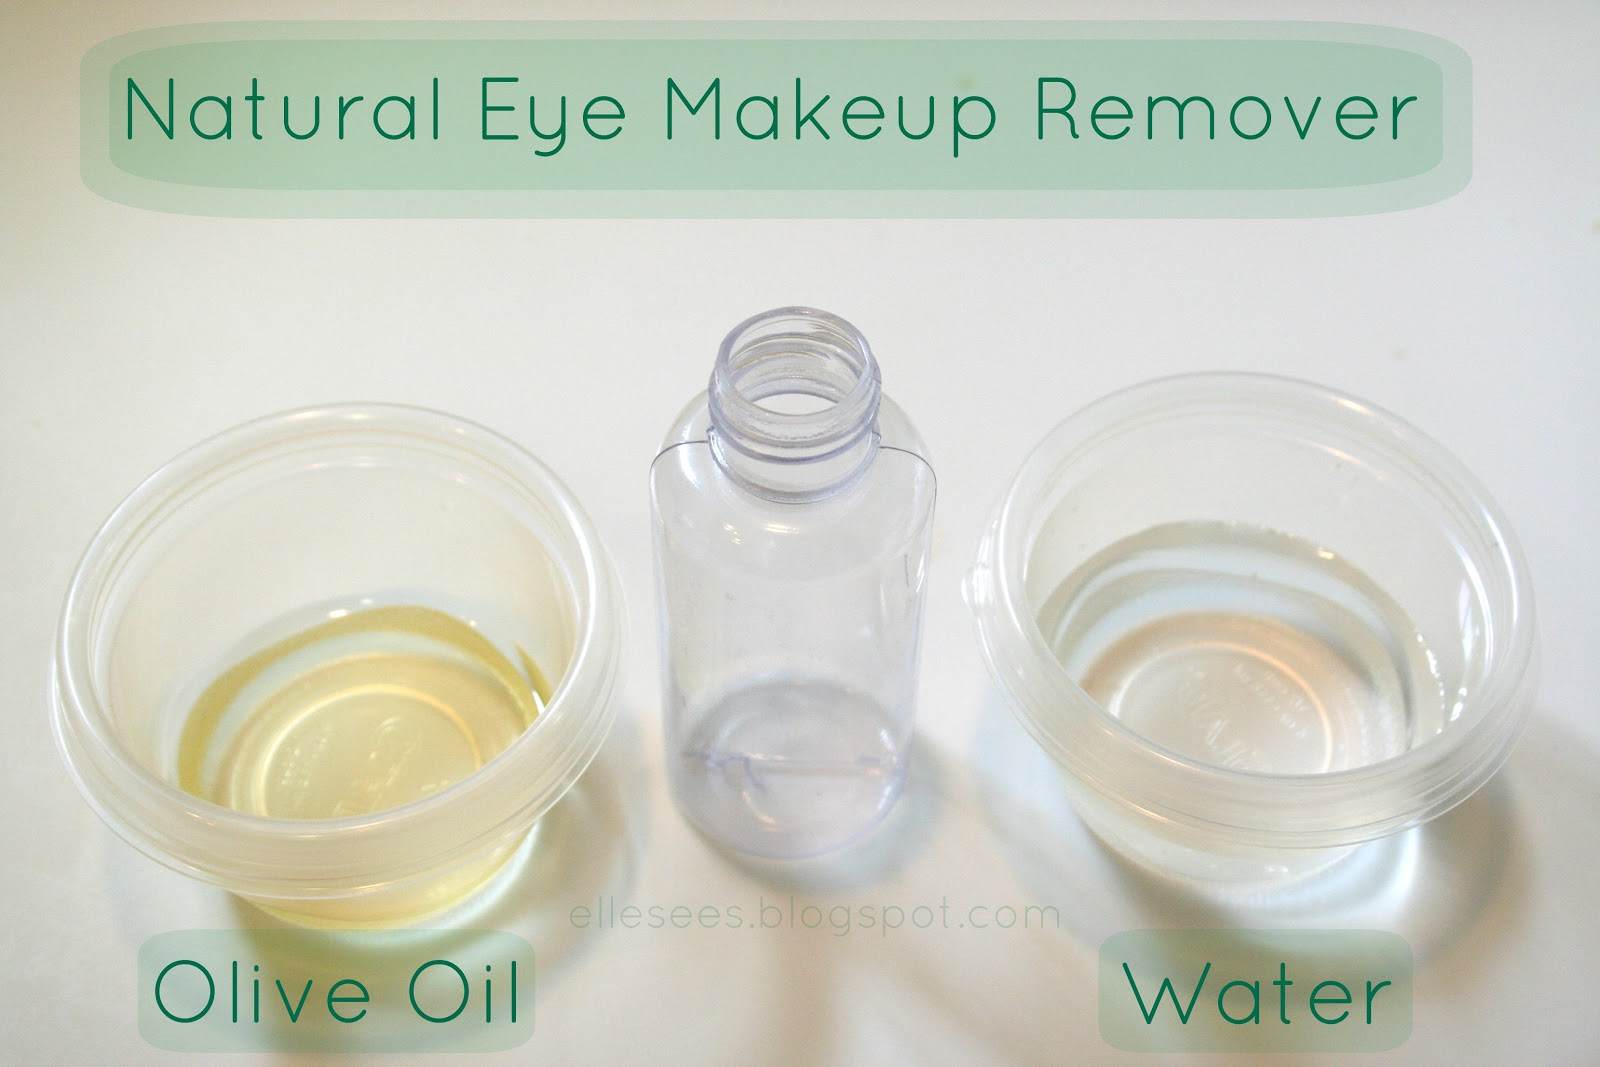 makeup tbsp remover 1 at 3 extra olive home at 2c water natural home virgin